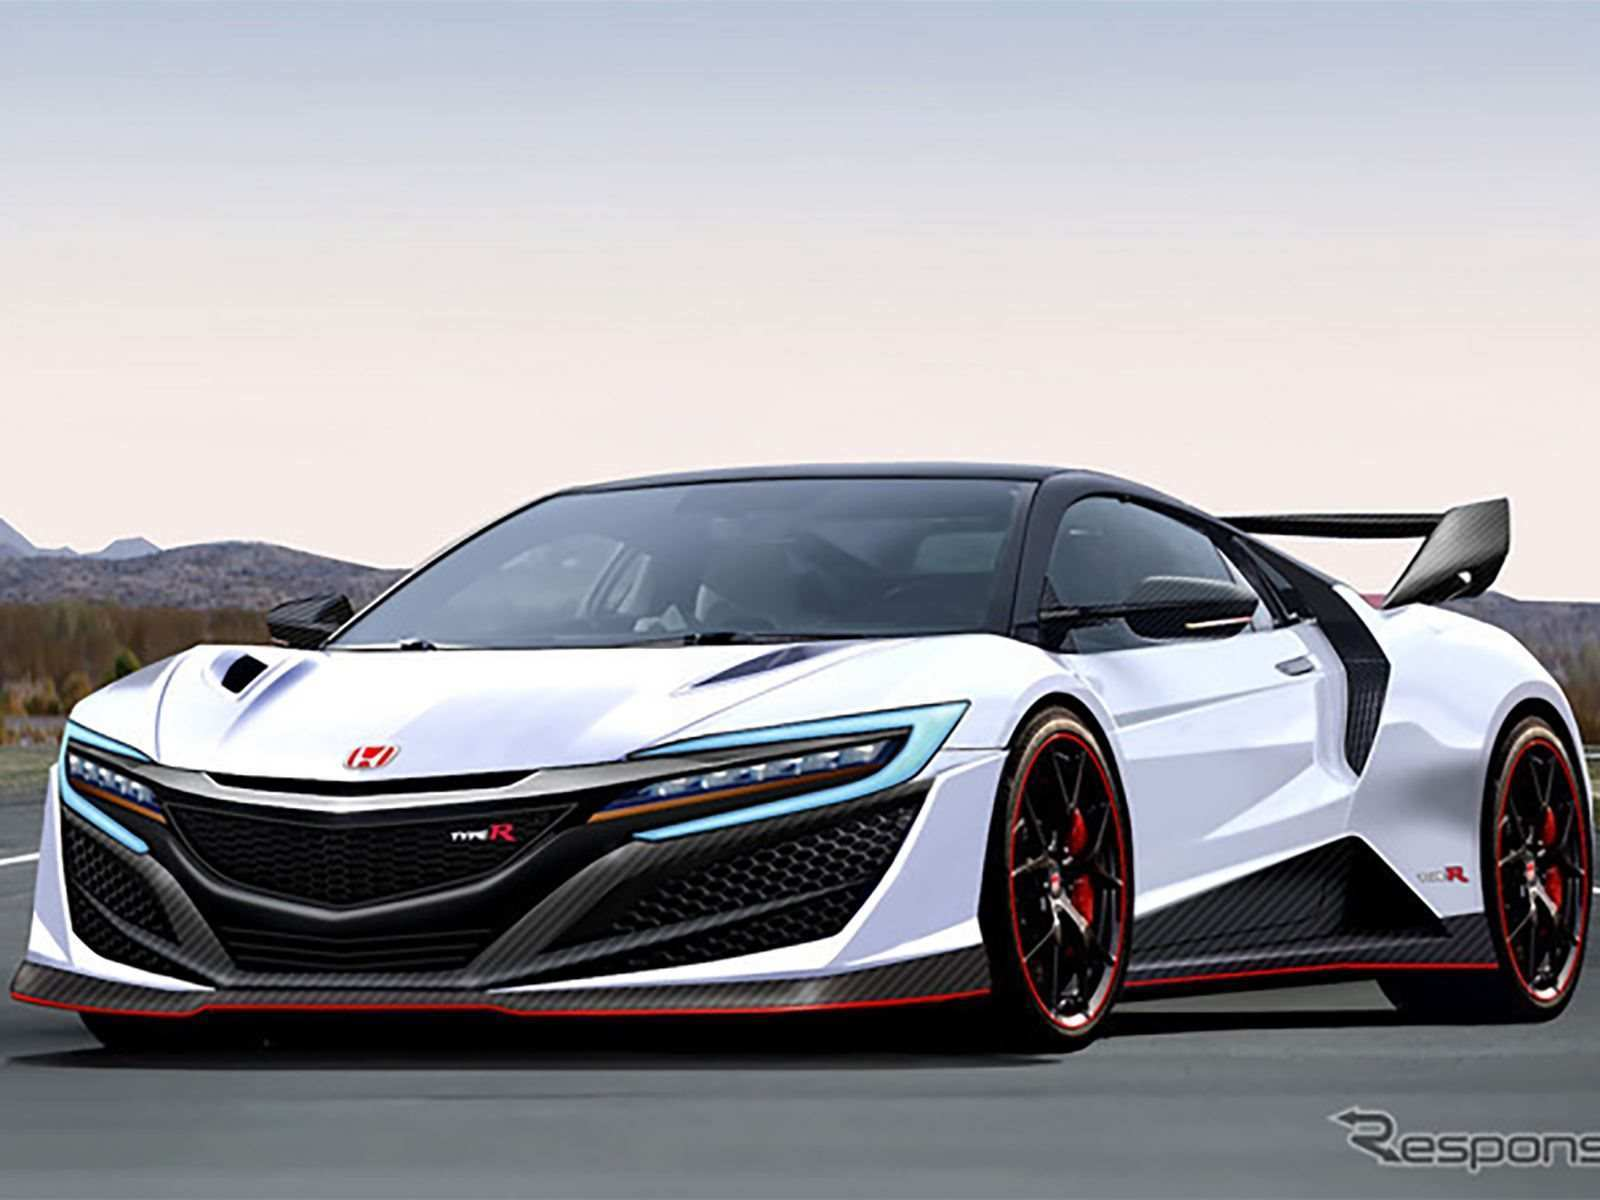 85 Concept of 2019 Acura Nsx Type R Picture with 2019 Acura Nsx Type R